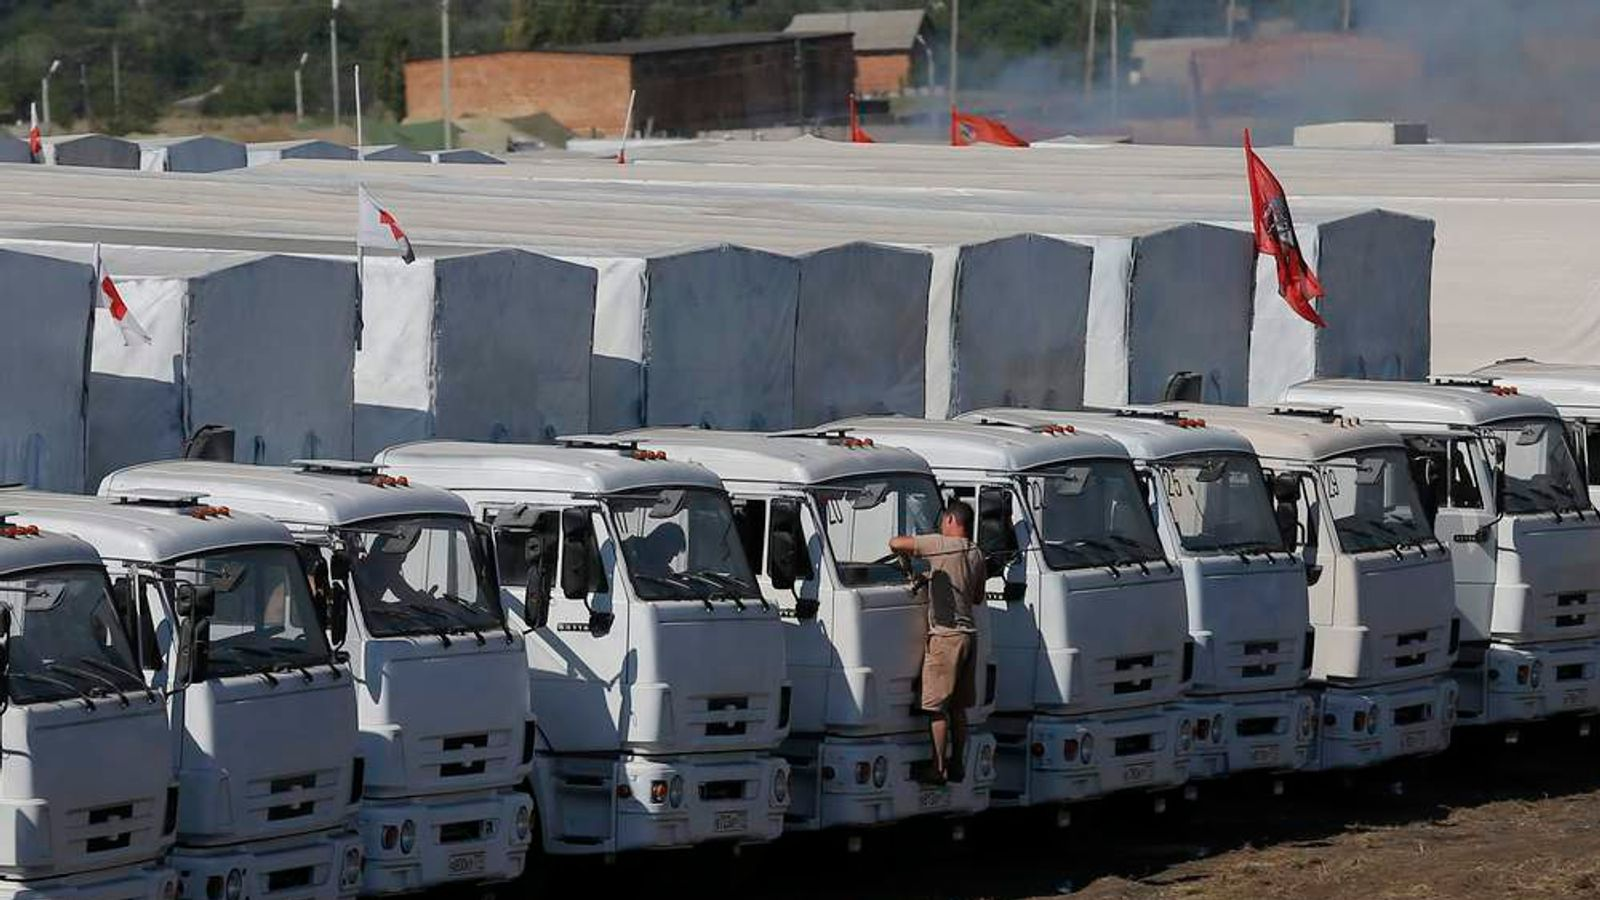 A Russian convoy of trucks carrying humanitarian aid for Ukraine is parked at a camp near Kamensk-Shakhtinsky